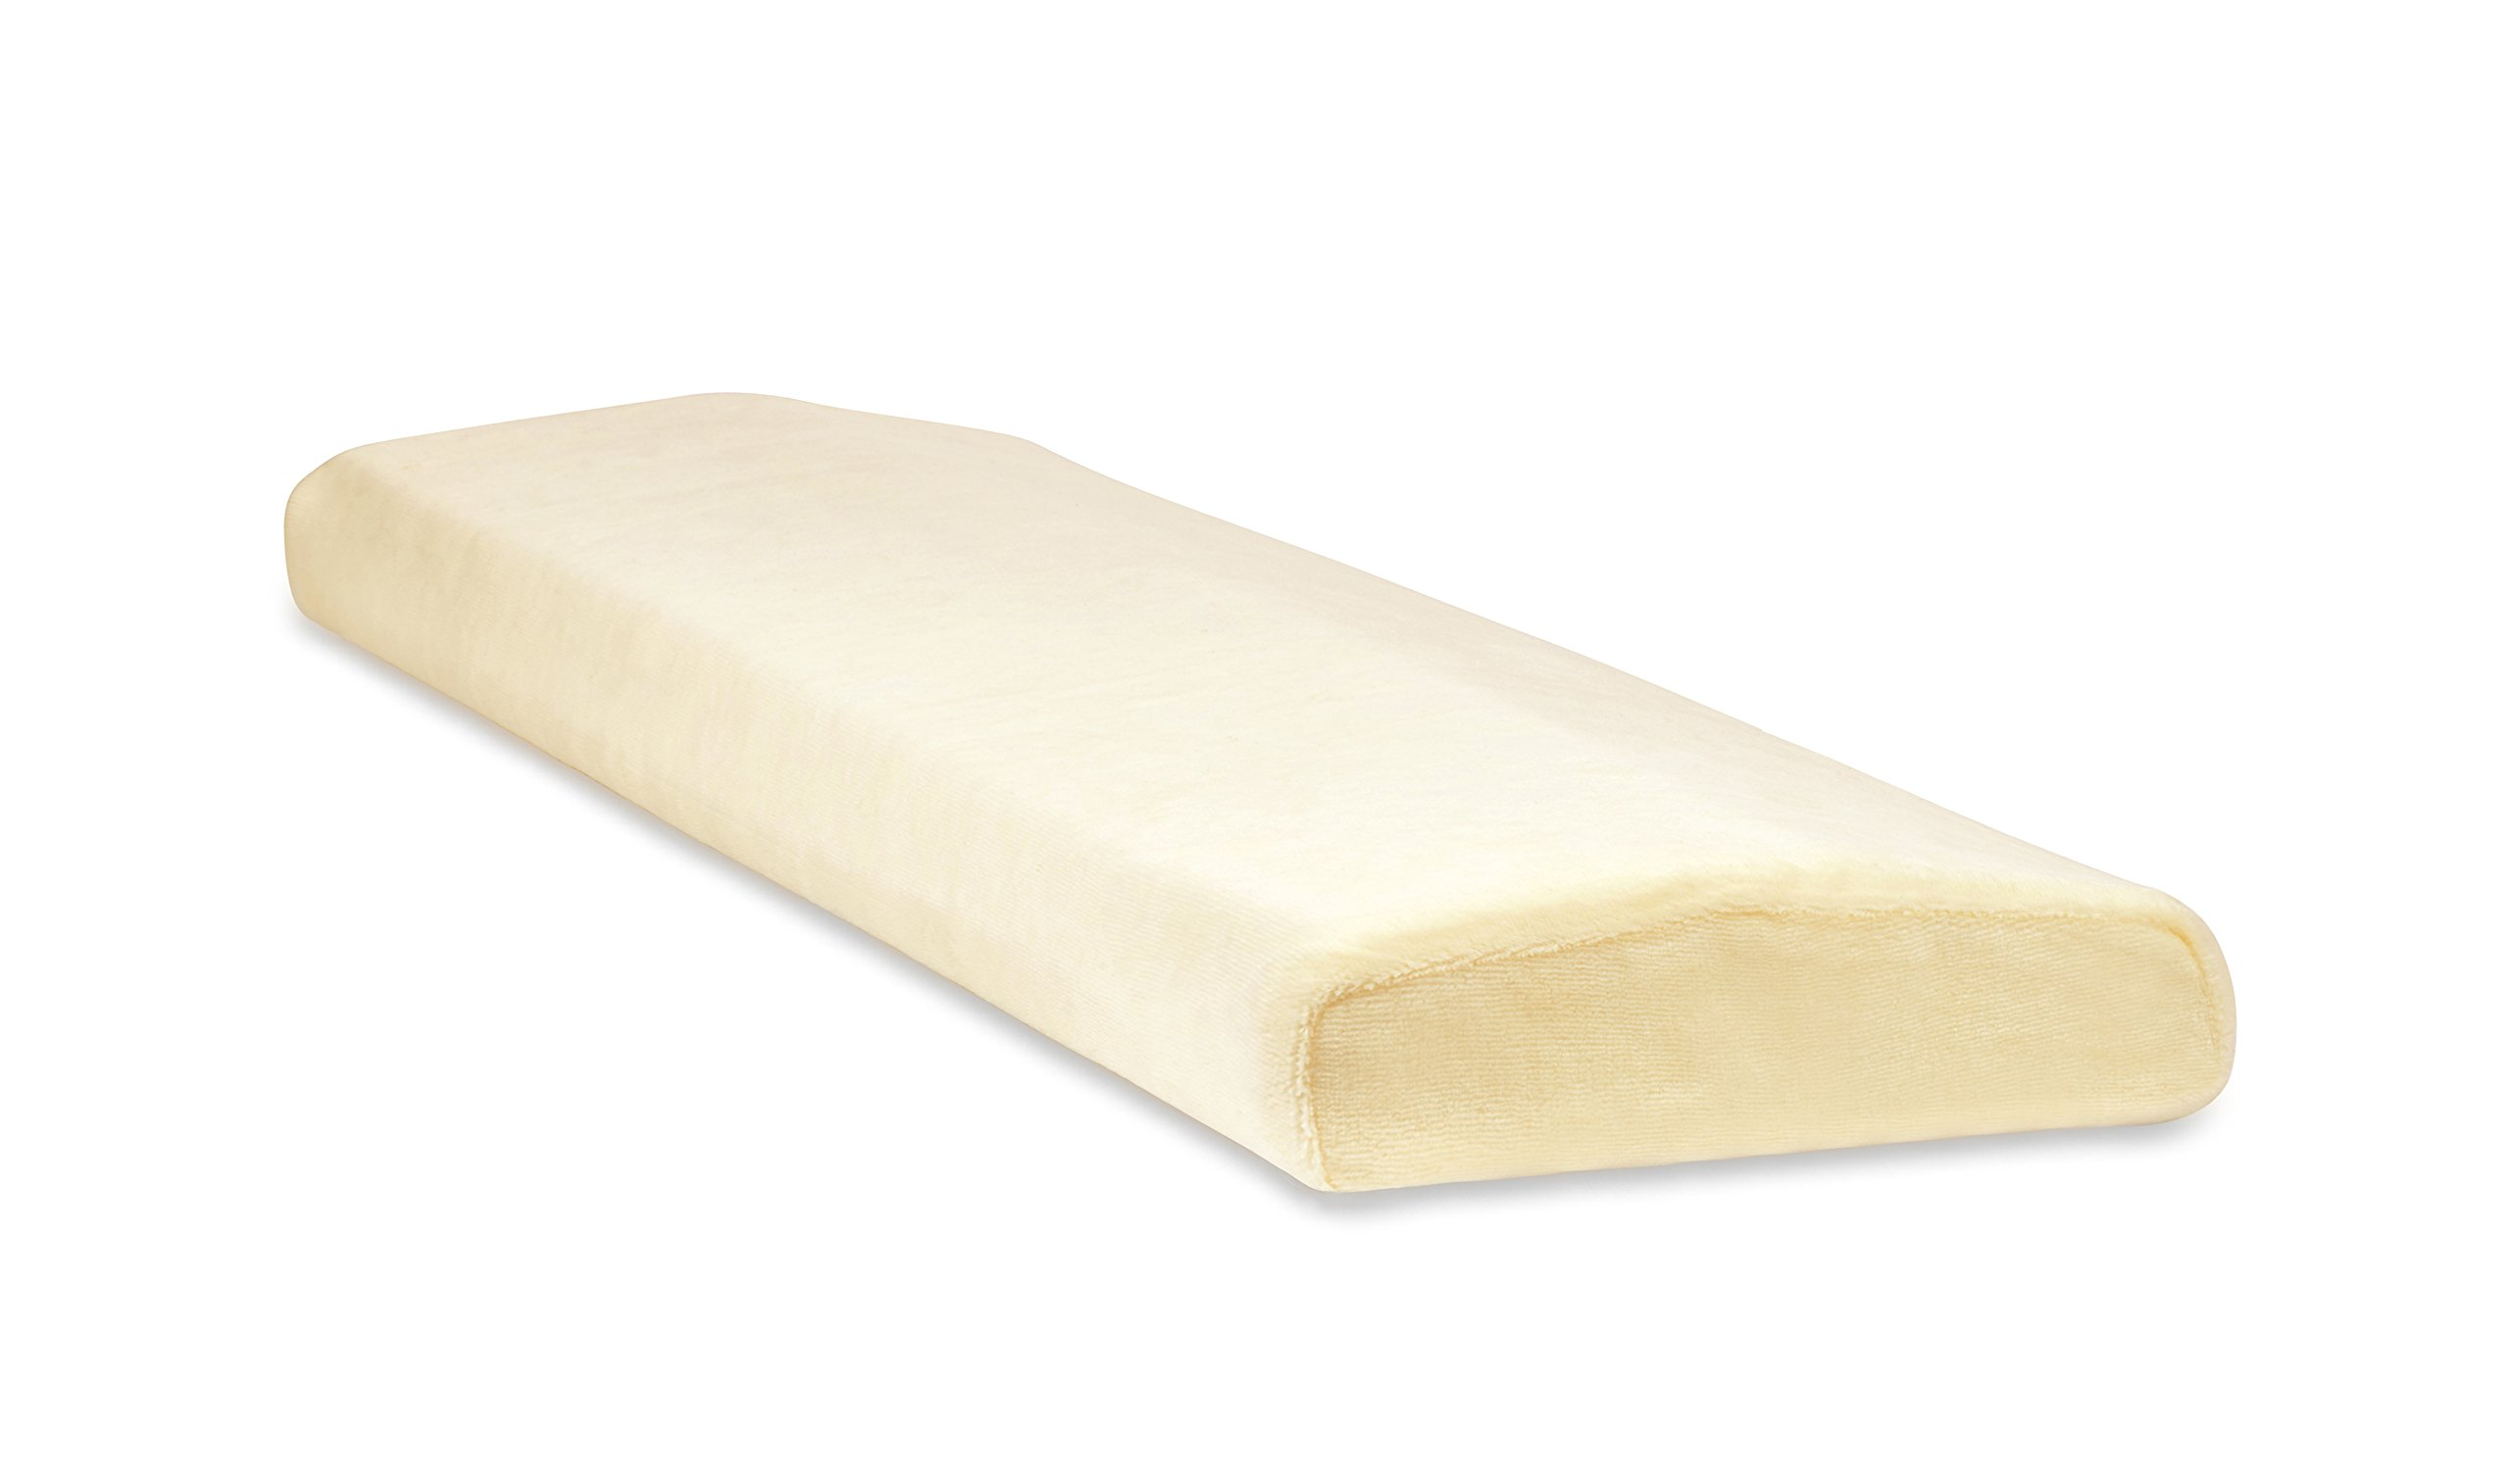 TruContour Super Lumbar Pillow for Sleeping Back Pain - Support The Lower Back in Bed with Medical Grade Memory Foam